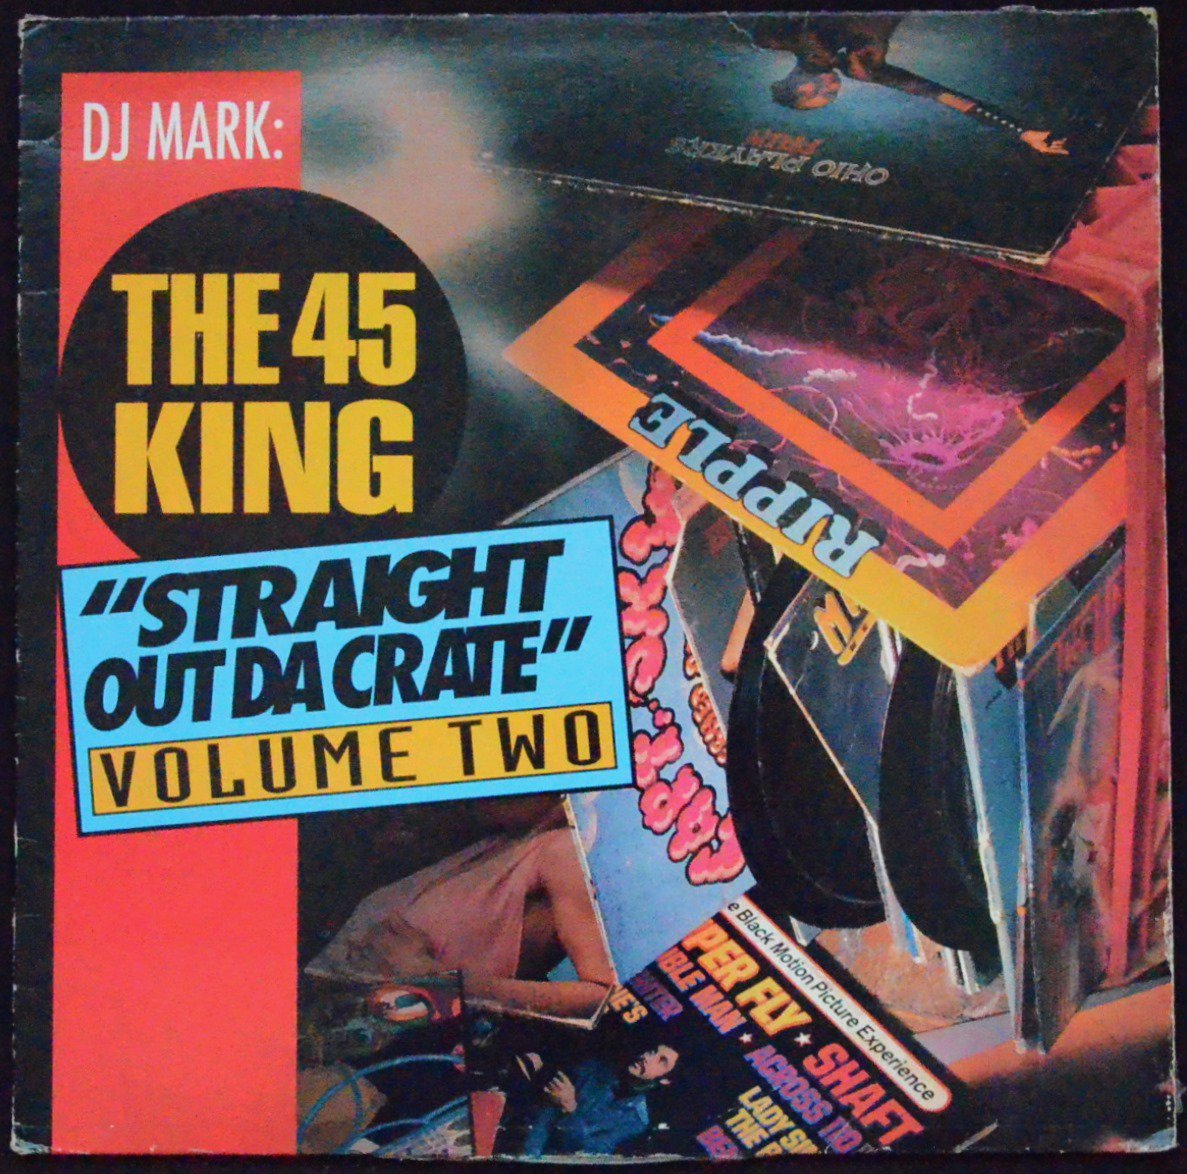 DJ MARK: THE 45 KING / STRAIGHT OUT DA CRATE VOLUME 2 (1LP)